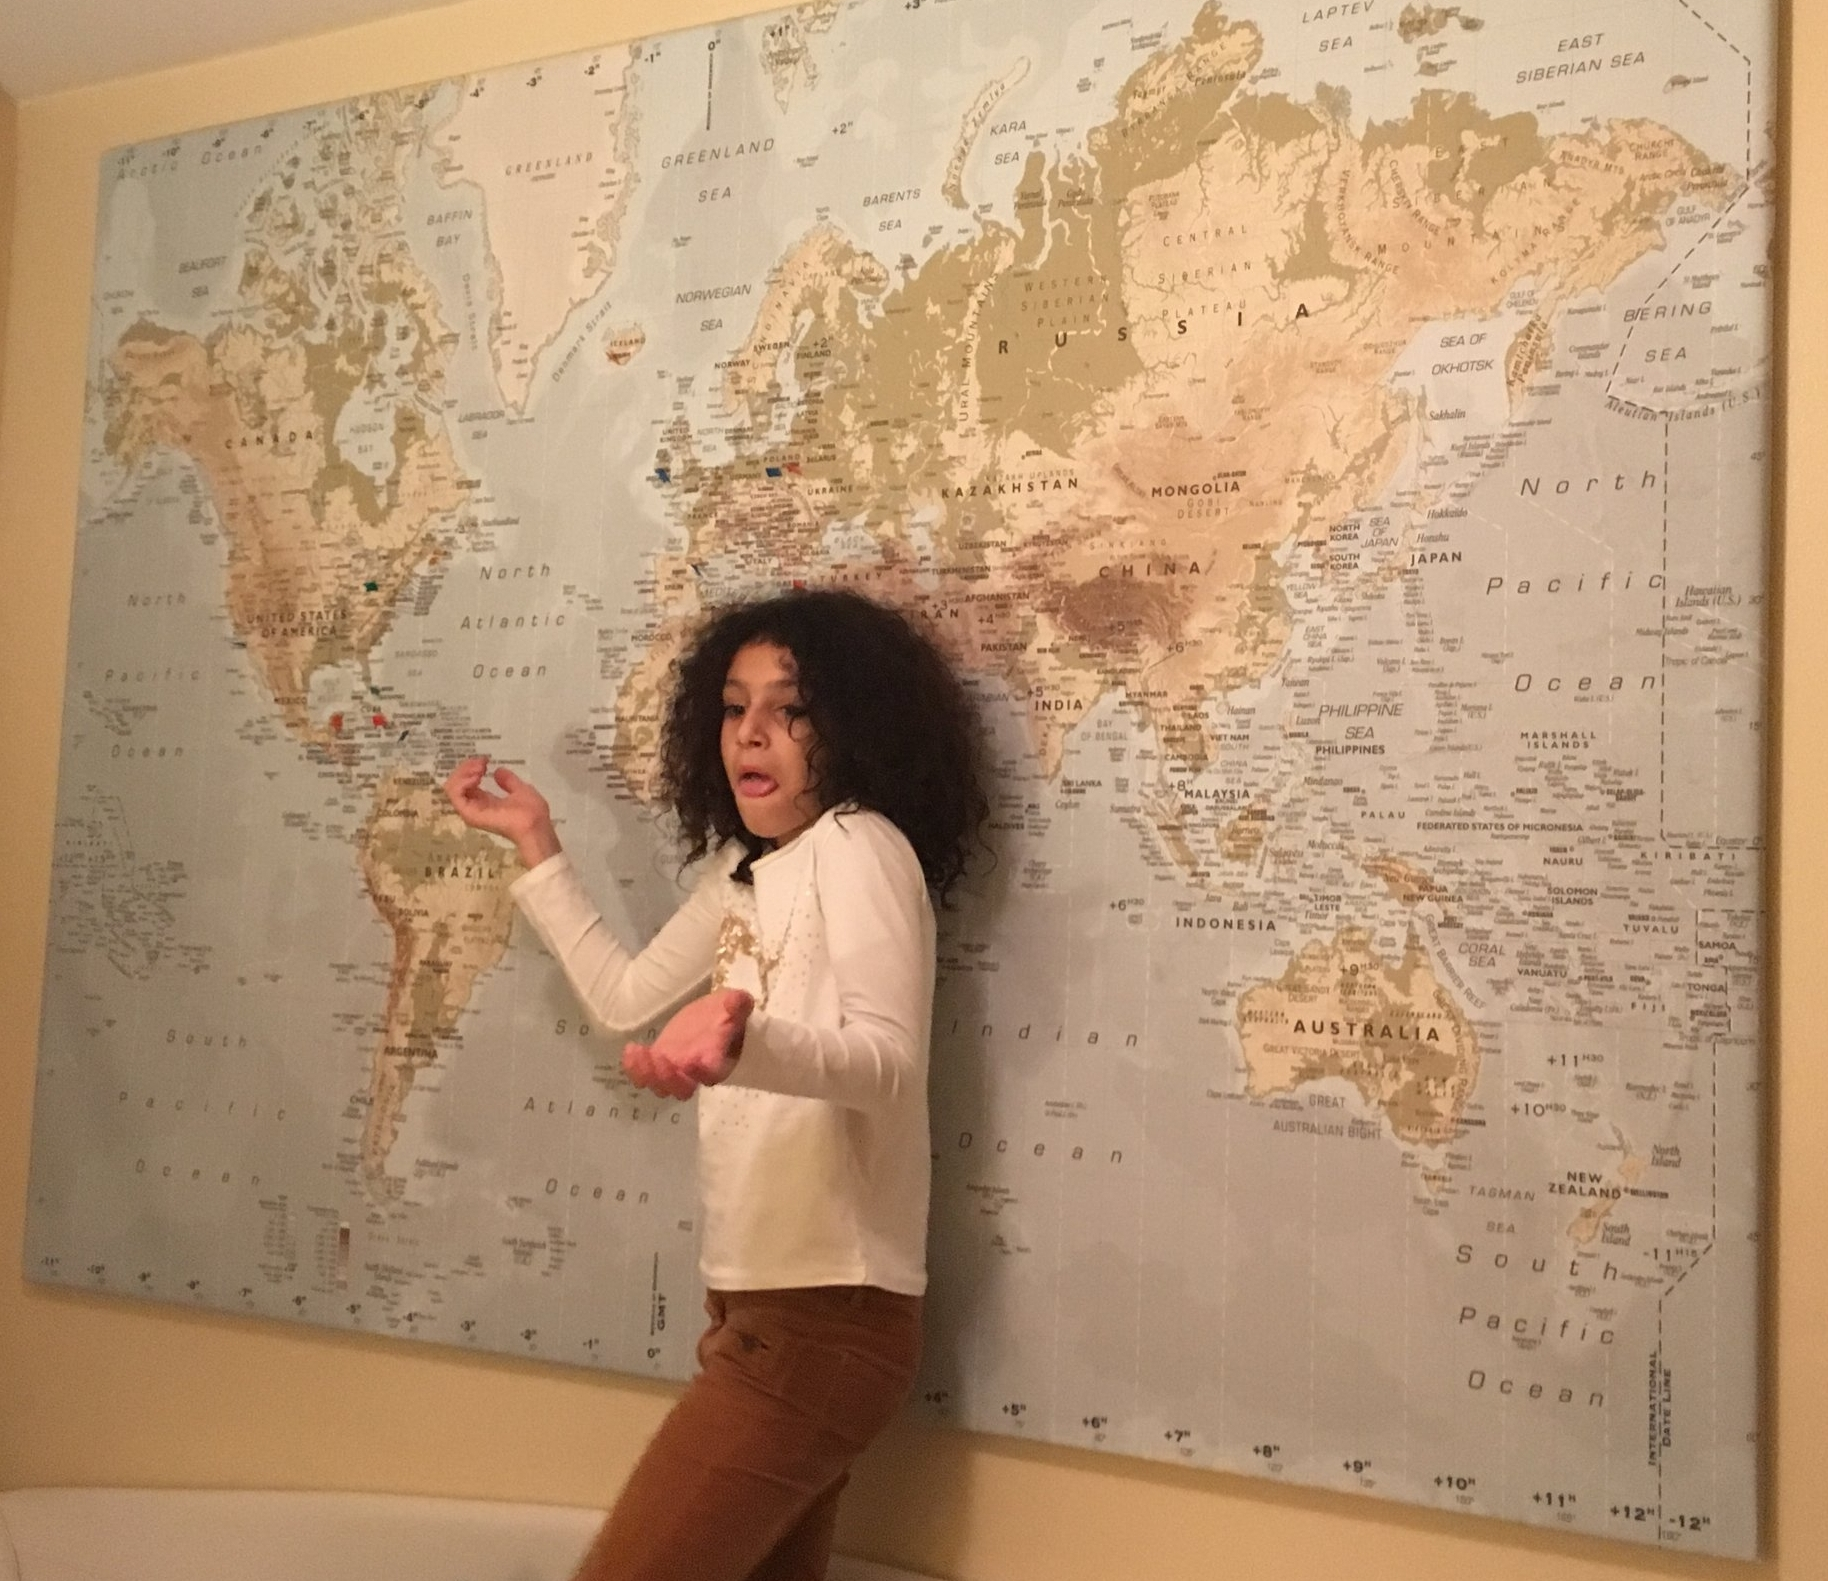 Space is at a premium in my friend's New York City apartment, but this young map enthusiast decided one wall needed a pushpin map of her family's adventures